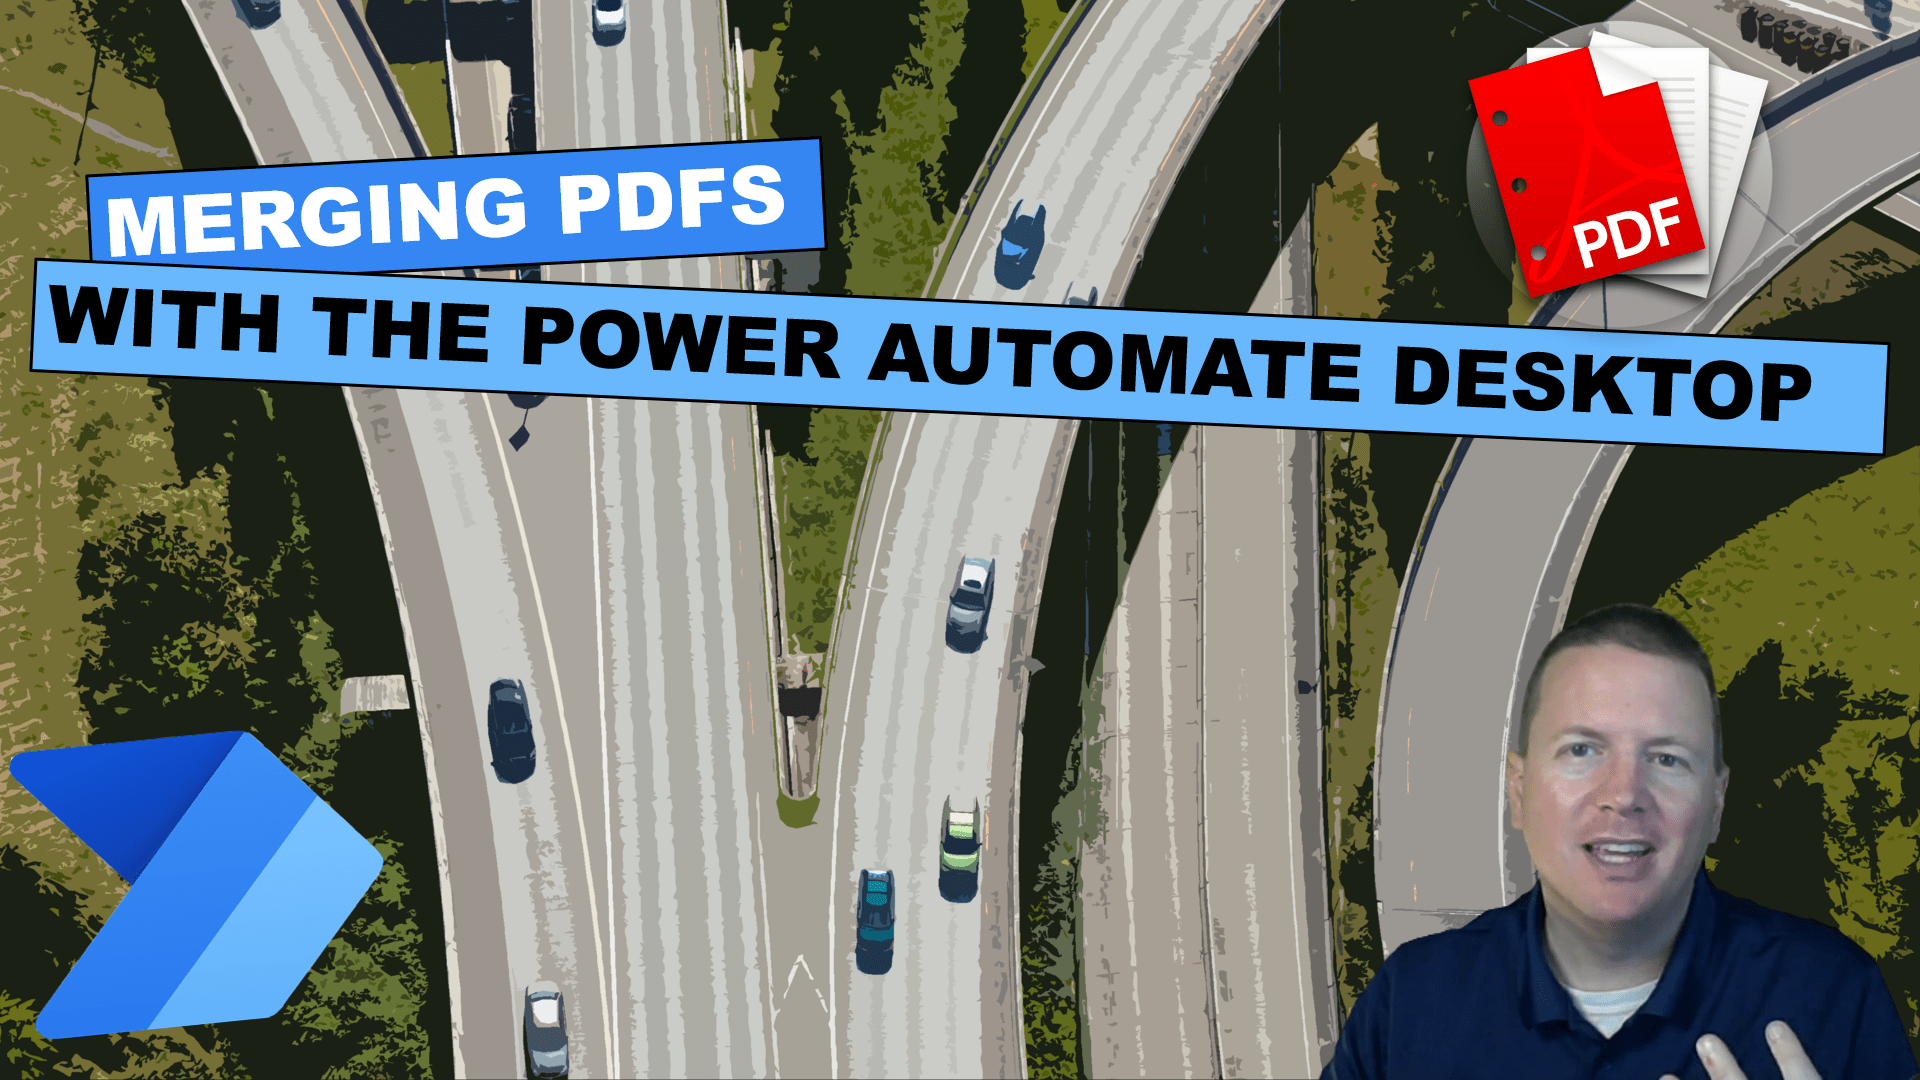 Merging PDF'S with the Power to Automate Desktop Cover image